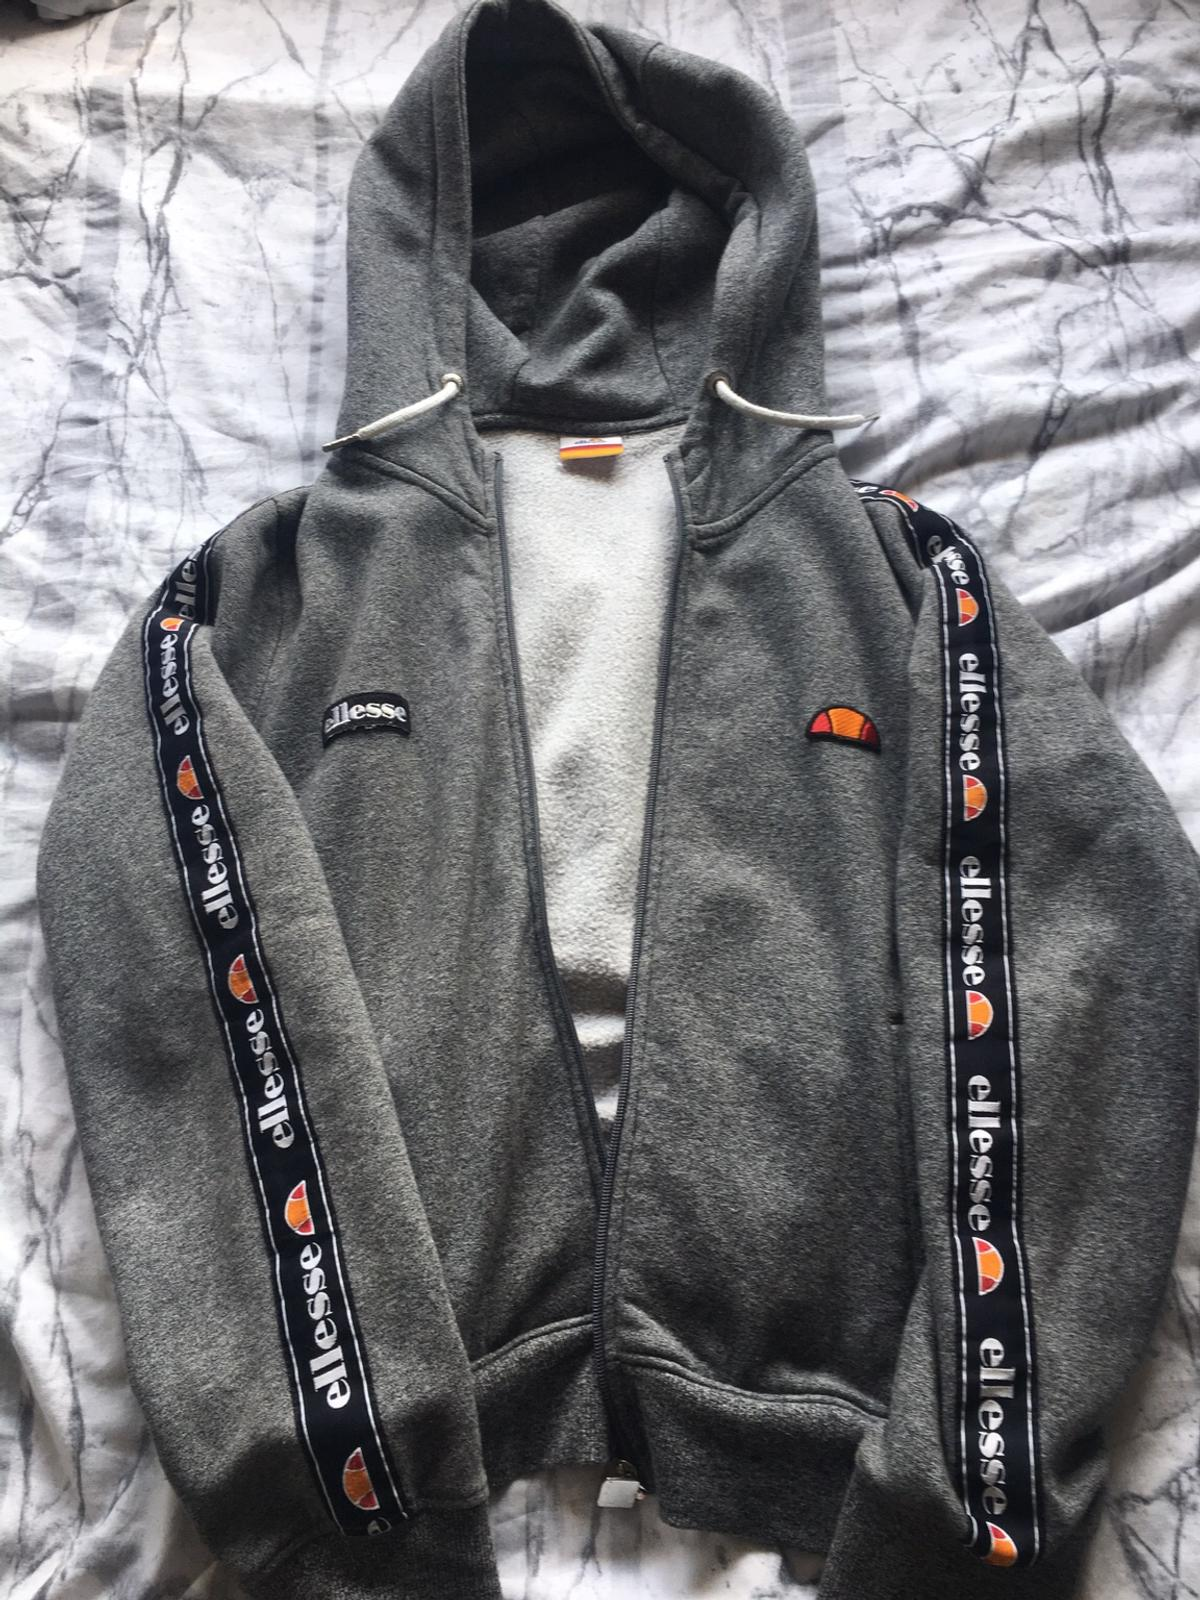 travestito Occidentale buona volontà  Women's size 14/16 grey ellesse zip hoodie in DY10 Wyre Forest for £5.00  for sale   Shpock